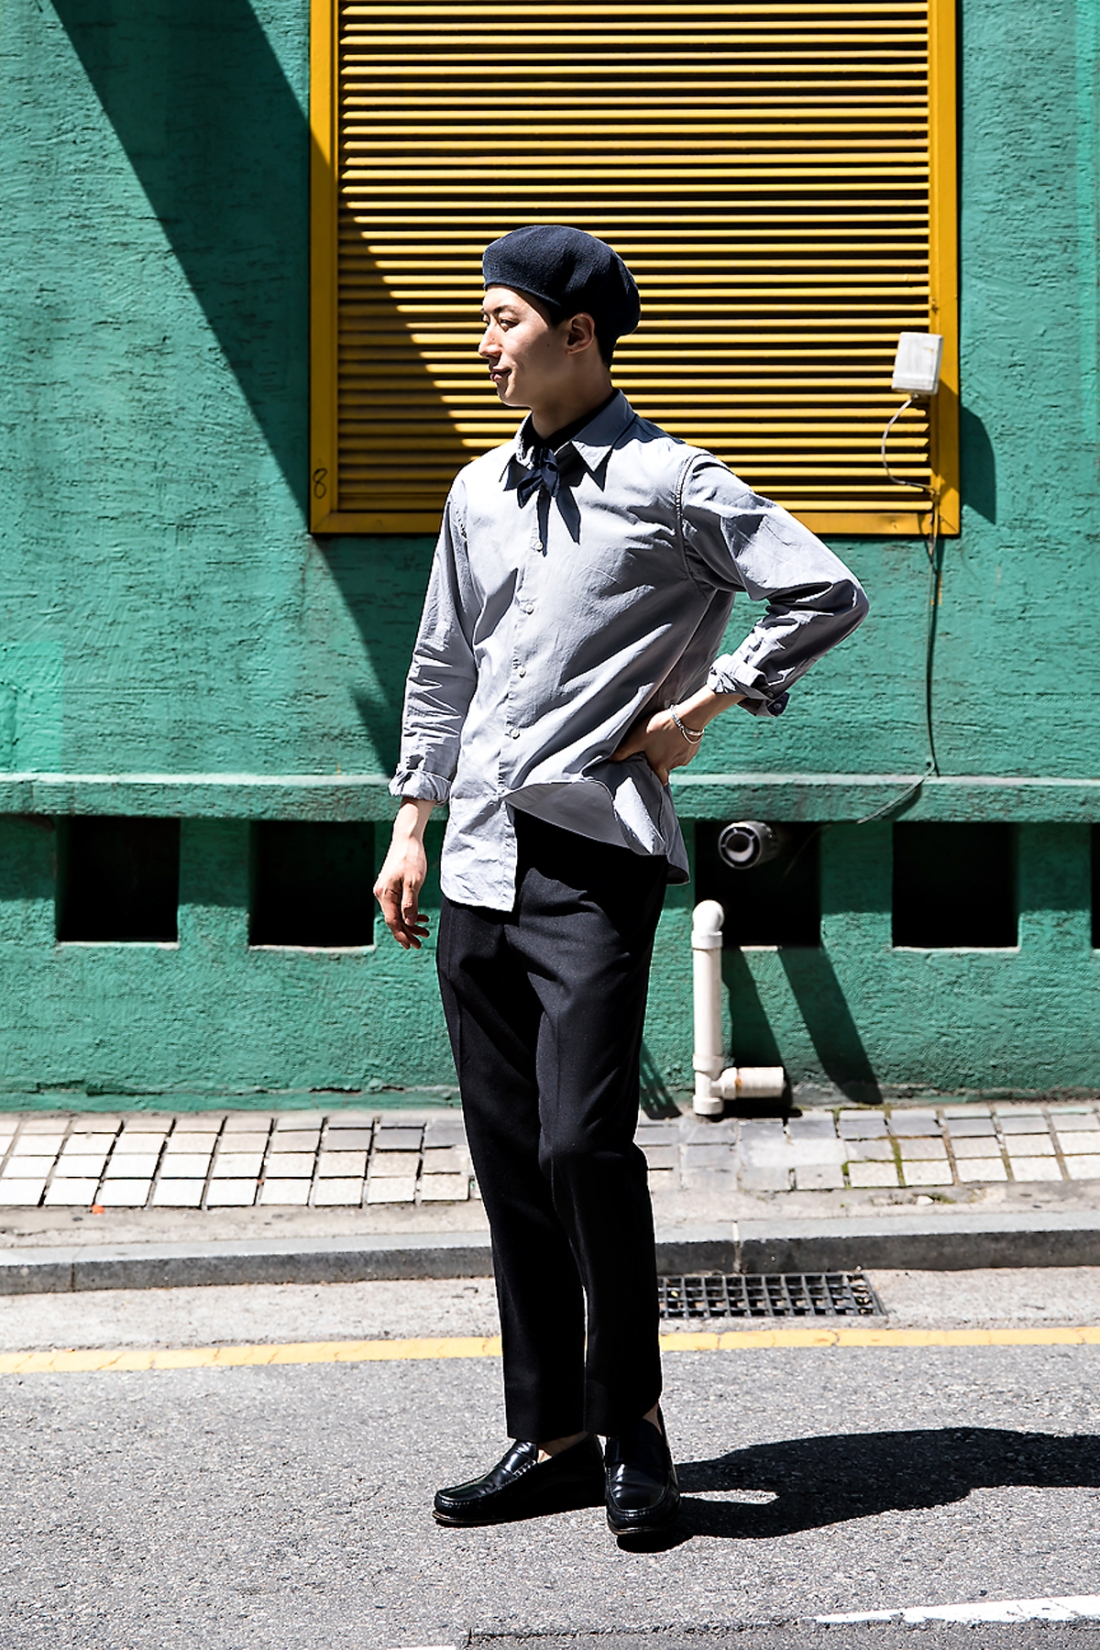 Kim Wan, Street Fashion 2017 in Seoul.jpg